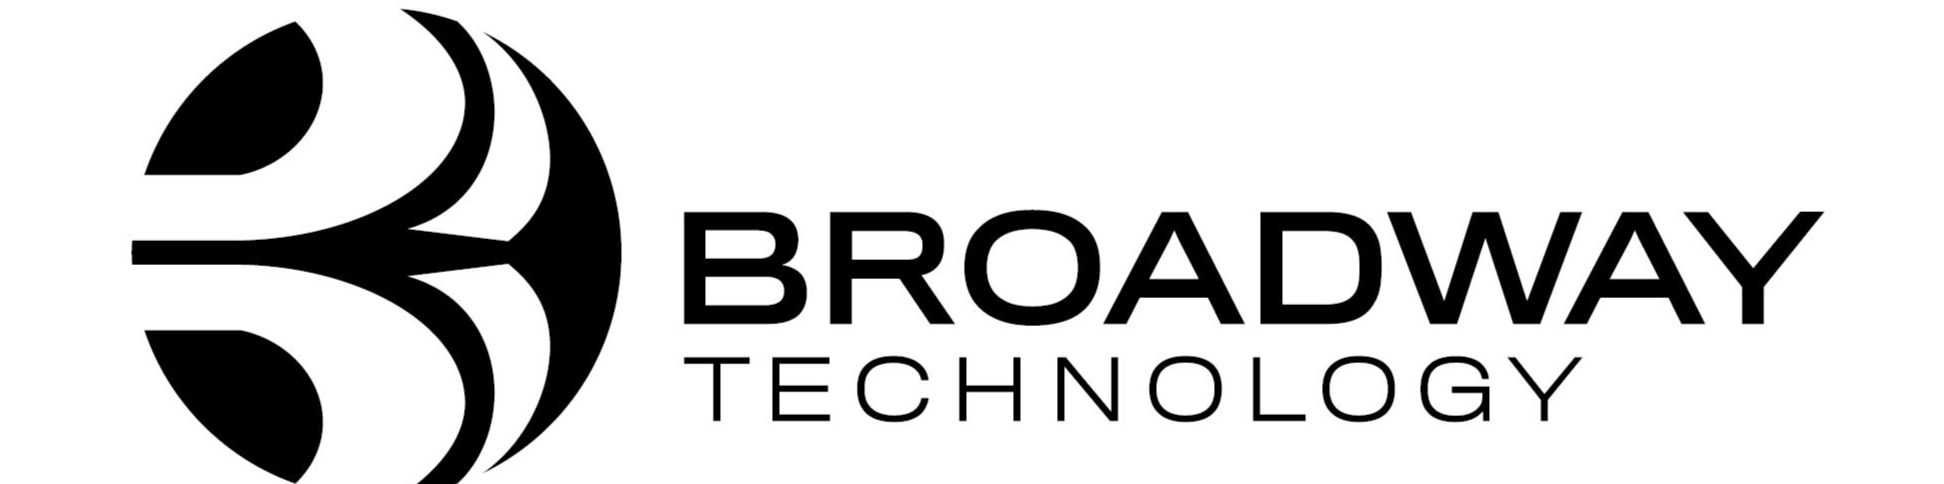 Broadway Technology Expands Executive Team, Appoints Michael Chin CEO